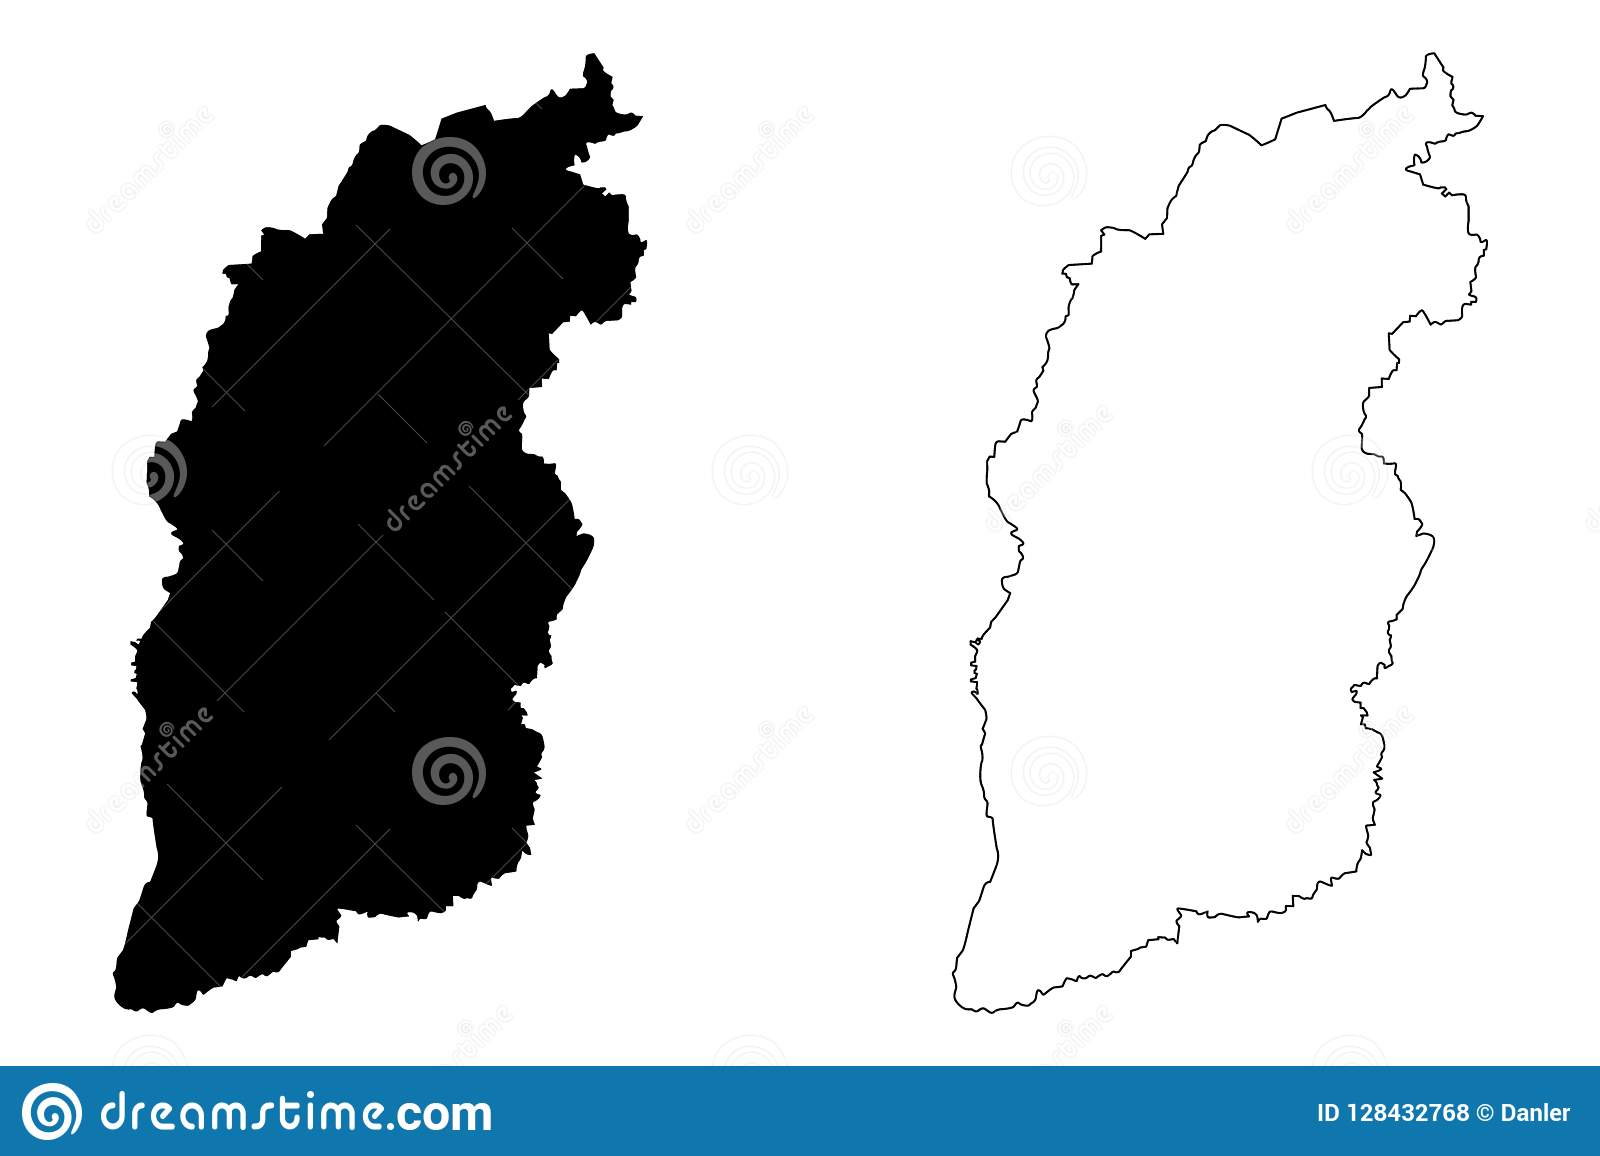 Shanxi China Map.Shanxi Province Map Vector Stock Vector Illustration Of Oblast